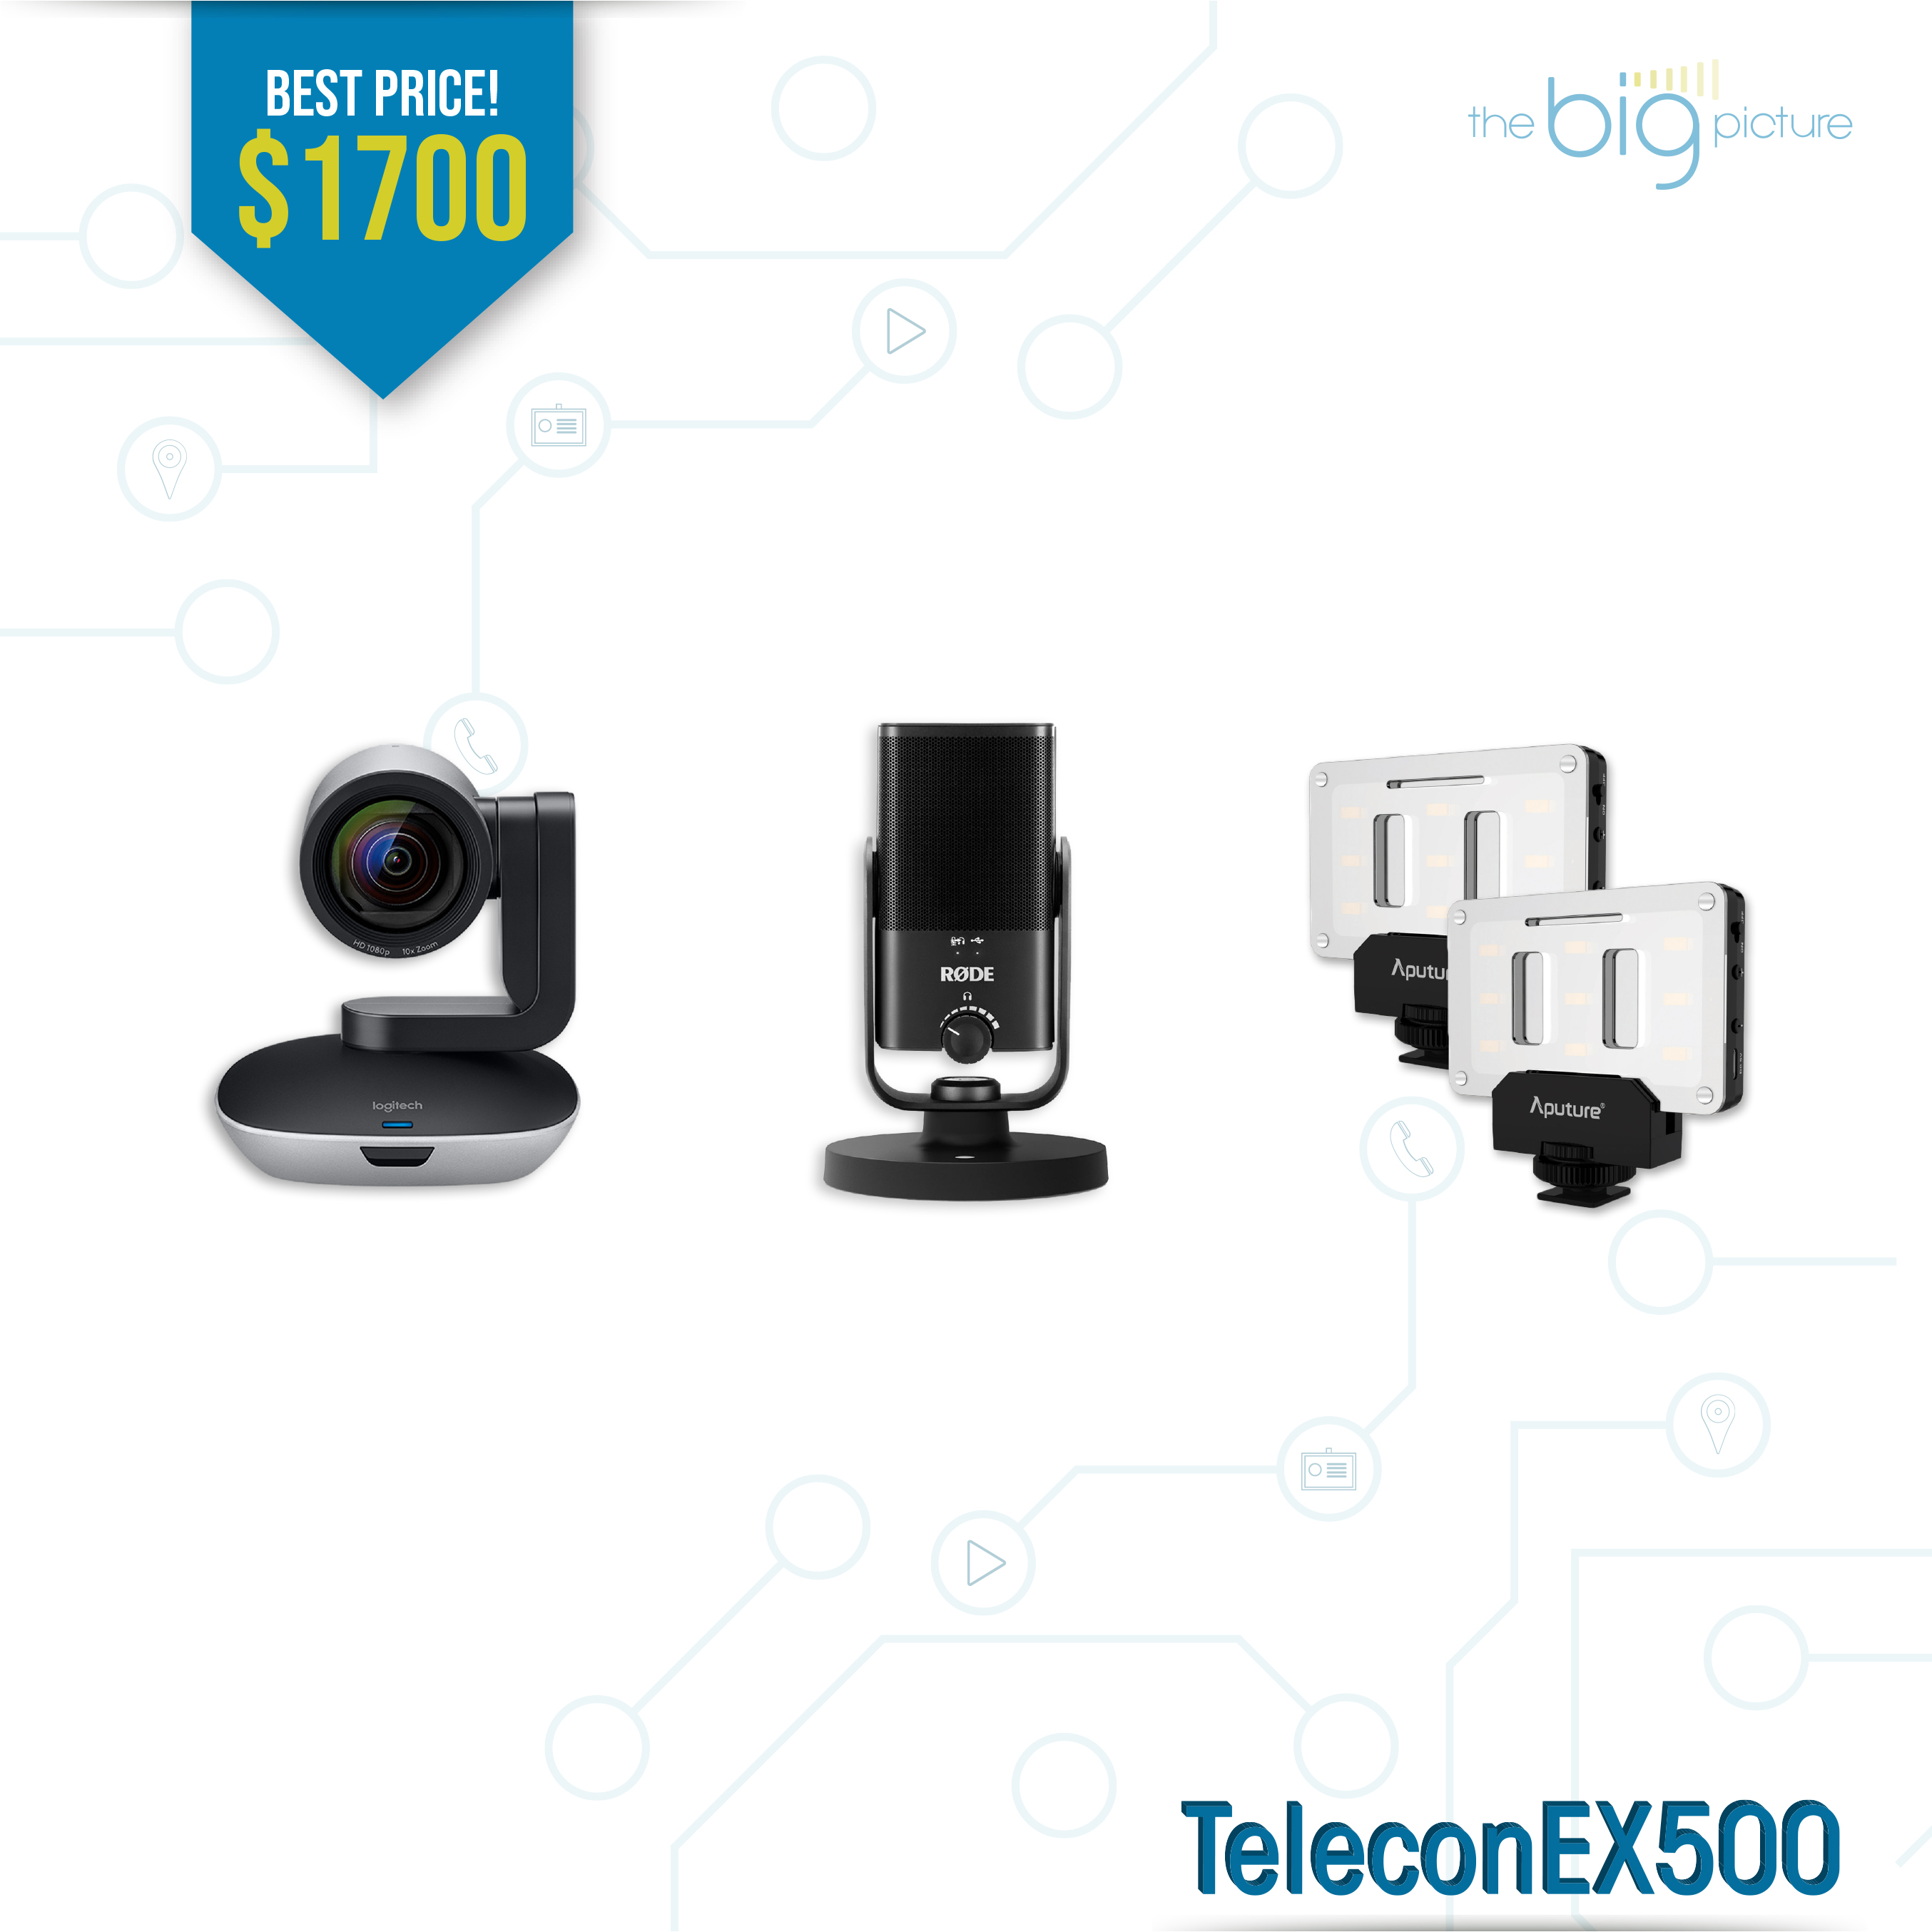 A set of products for TeleconEx500